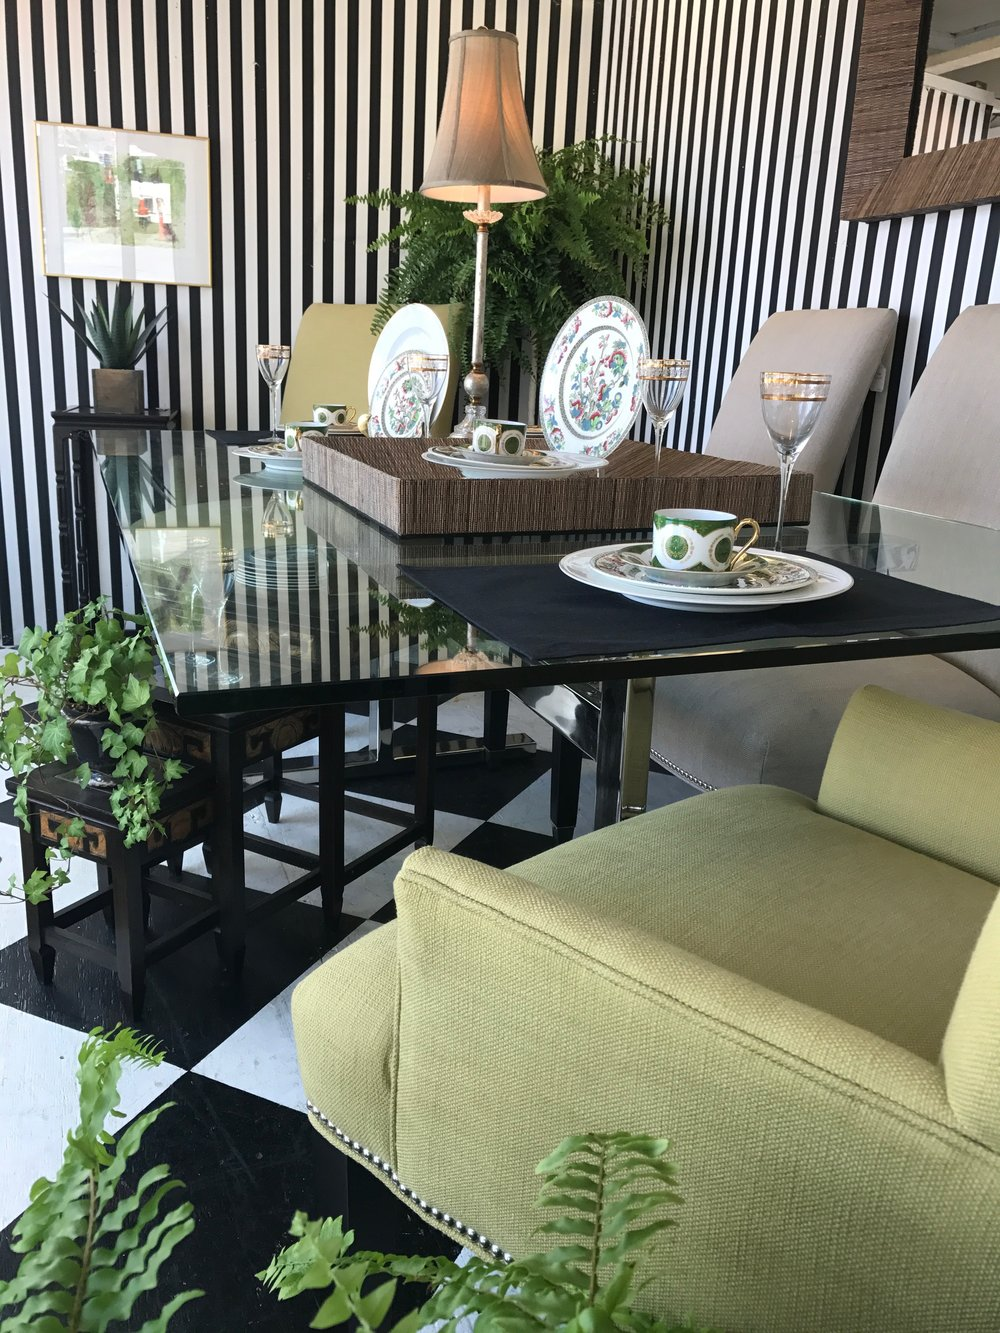 Why Not Spruce Up Your Space With A Pair Of Green Zebra Chairs? A Touch Of  Modern Works With Any Decor. Paired With This Lynn Chase Framed Scarf And  You ...